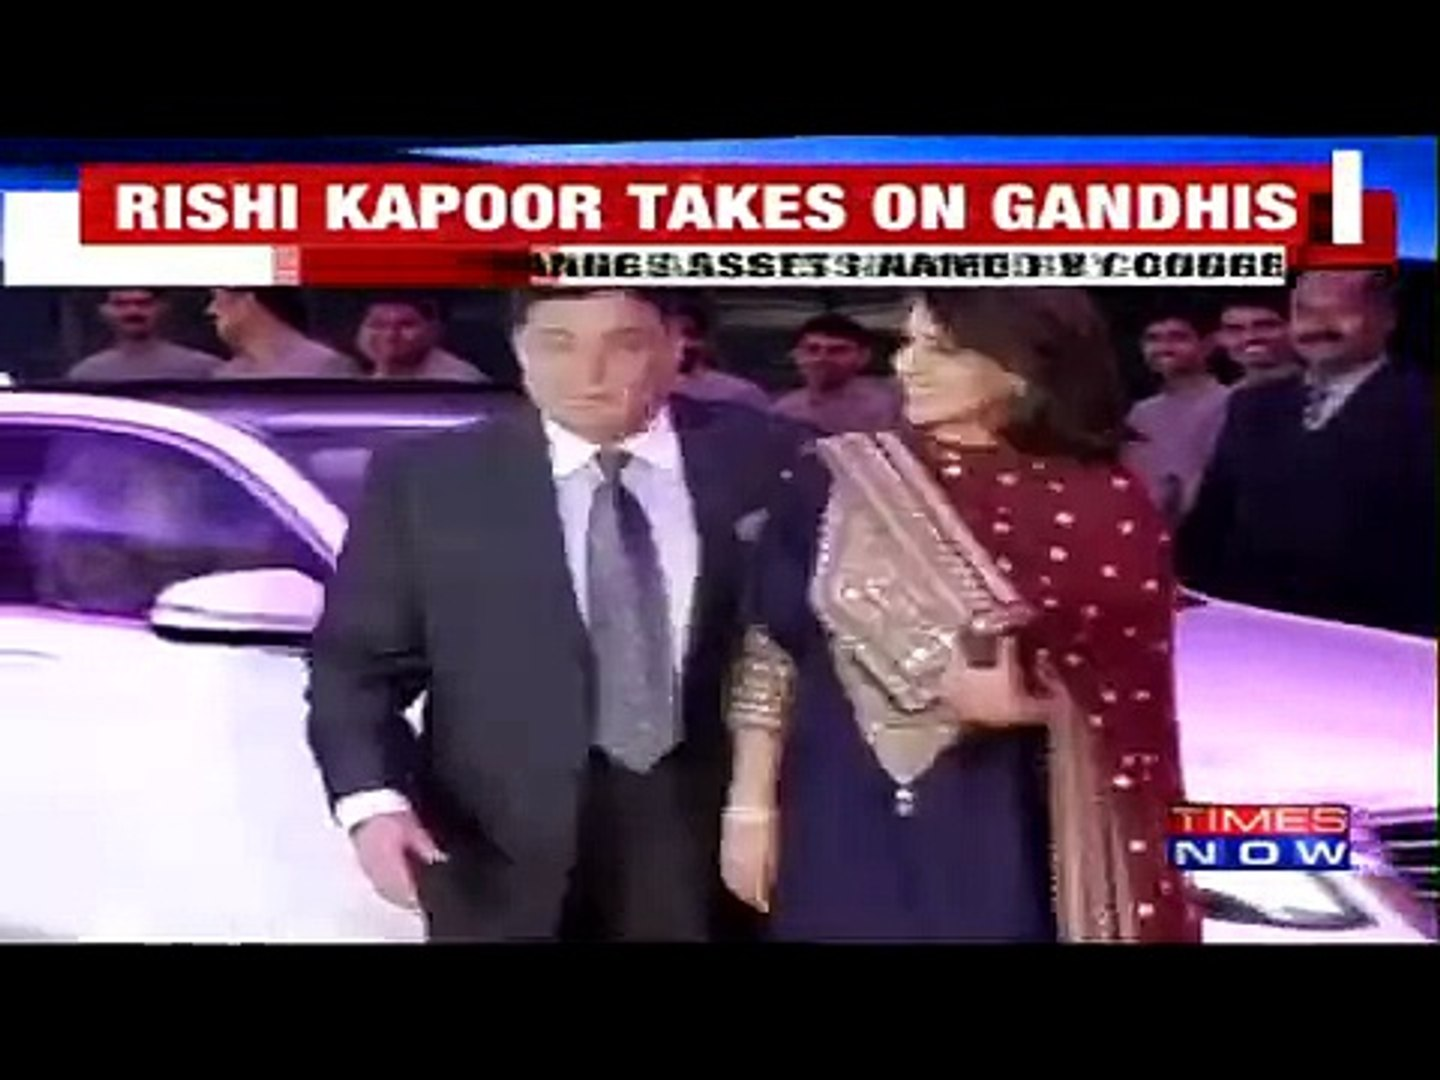 Latest:Rishi Kapoor Attack Gandhi Family Why Keeping Gandhi Name on Everywhere in India? Must Watch